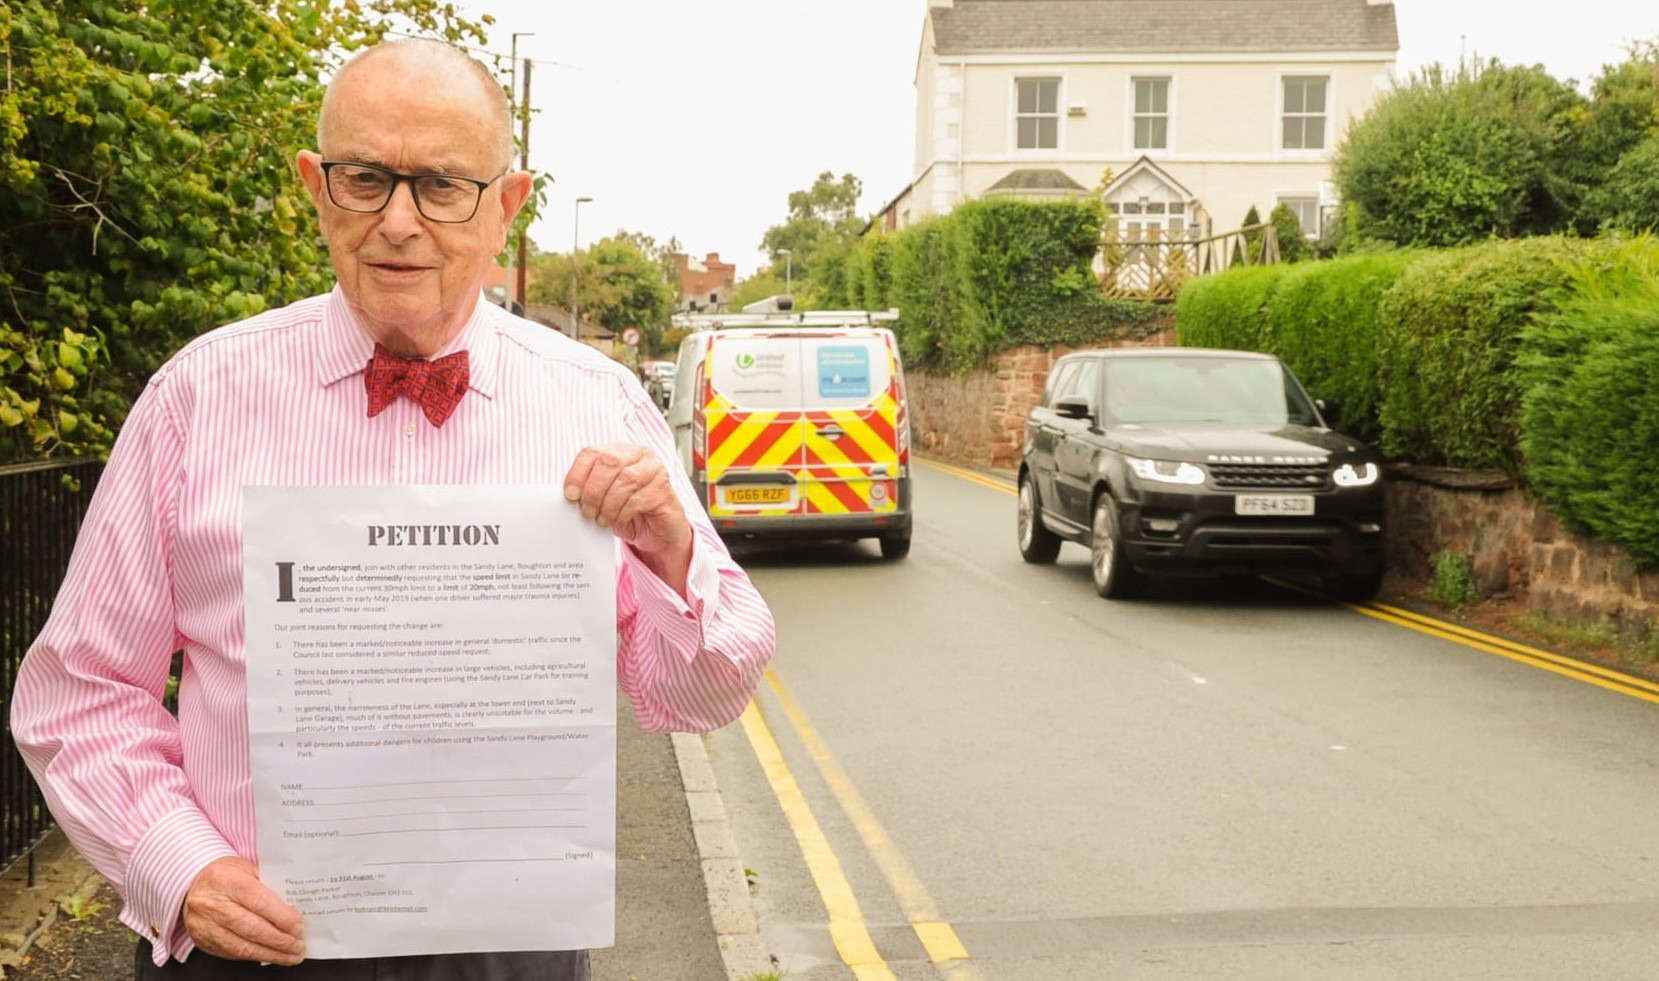 Chester: Petition launched to reduce speed limit on 'dangerous' Sandy Lane